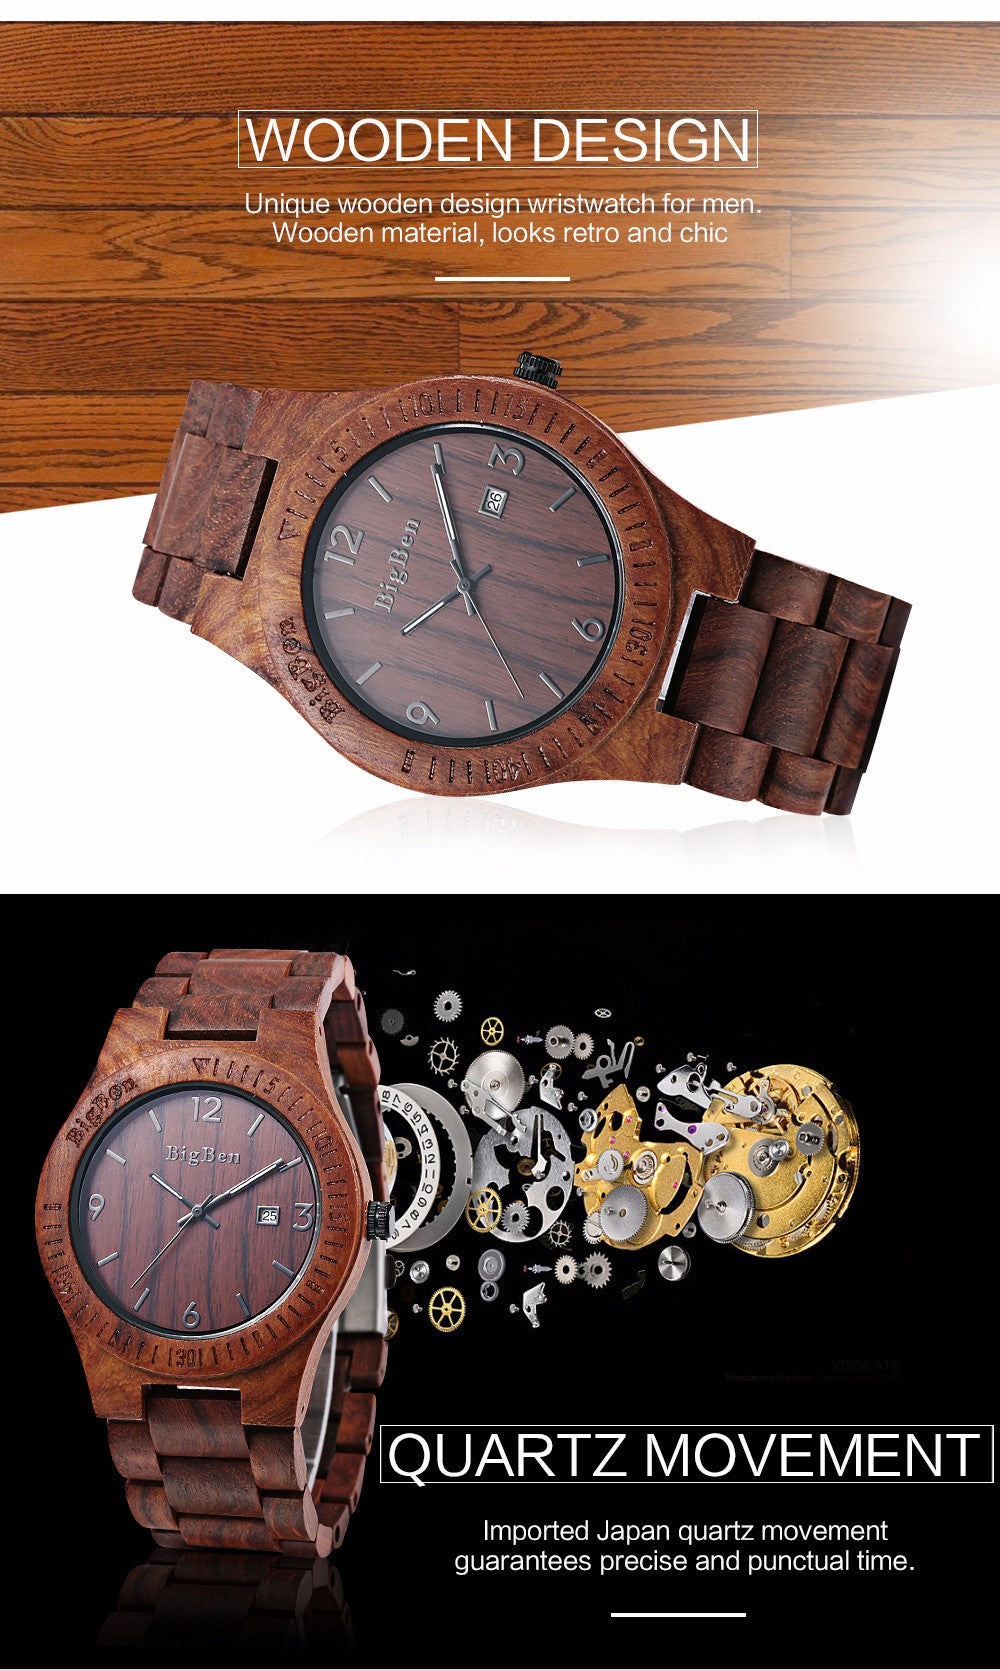 LIK - Premium Wooden Watch